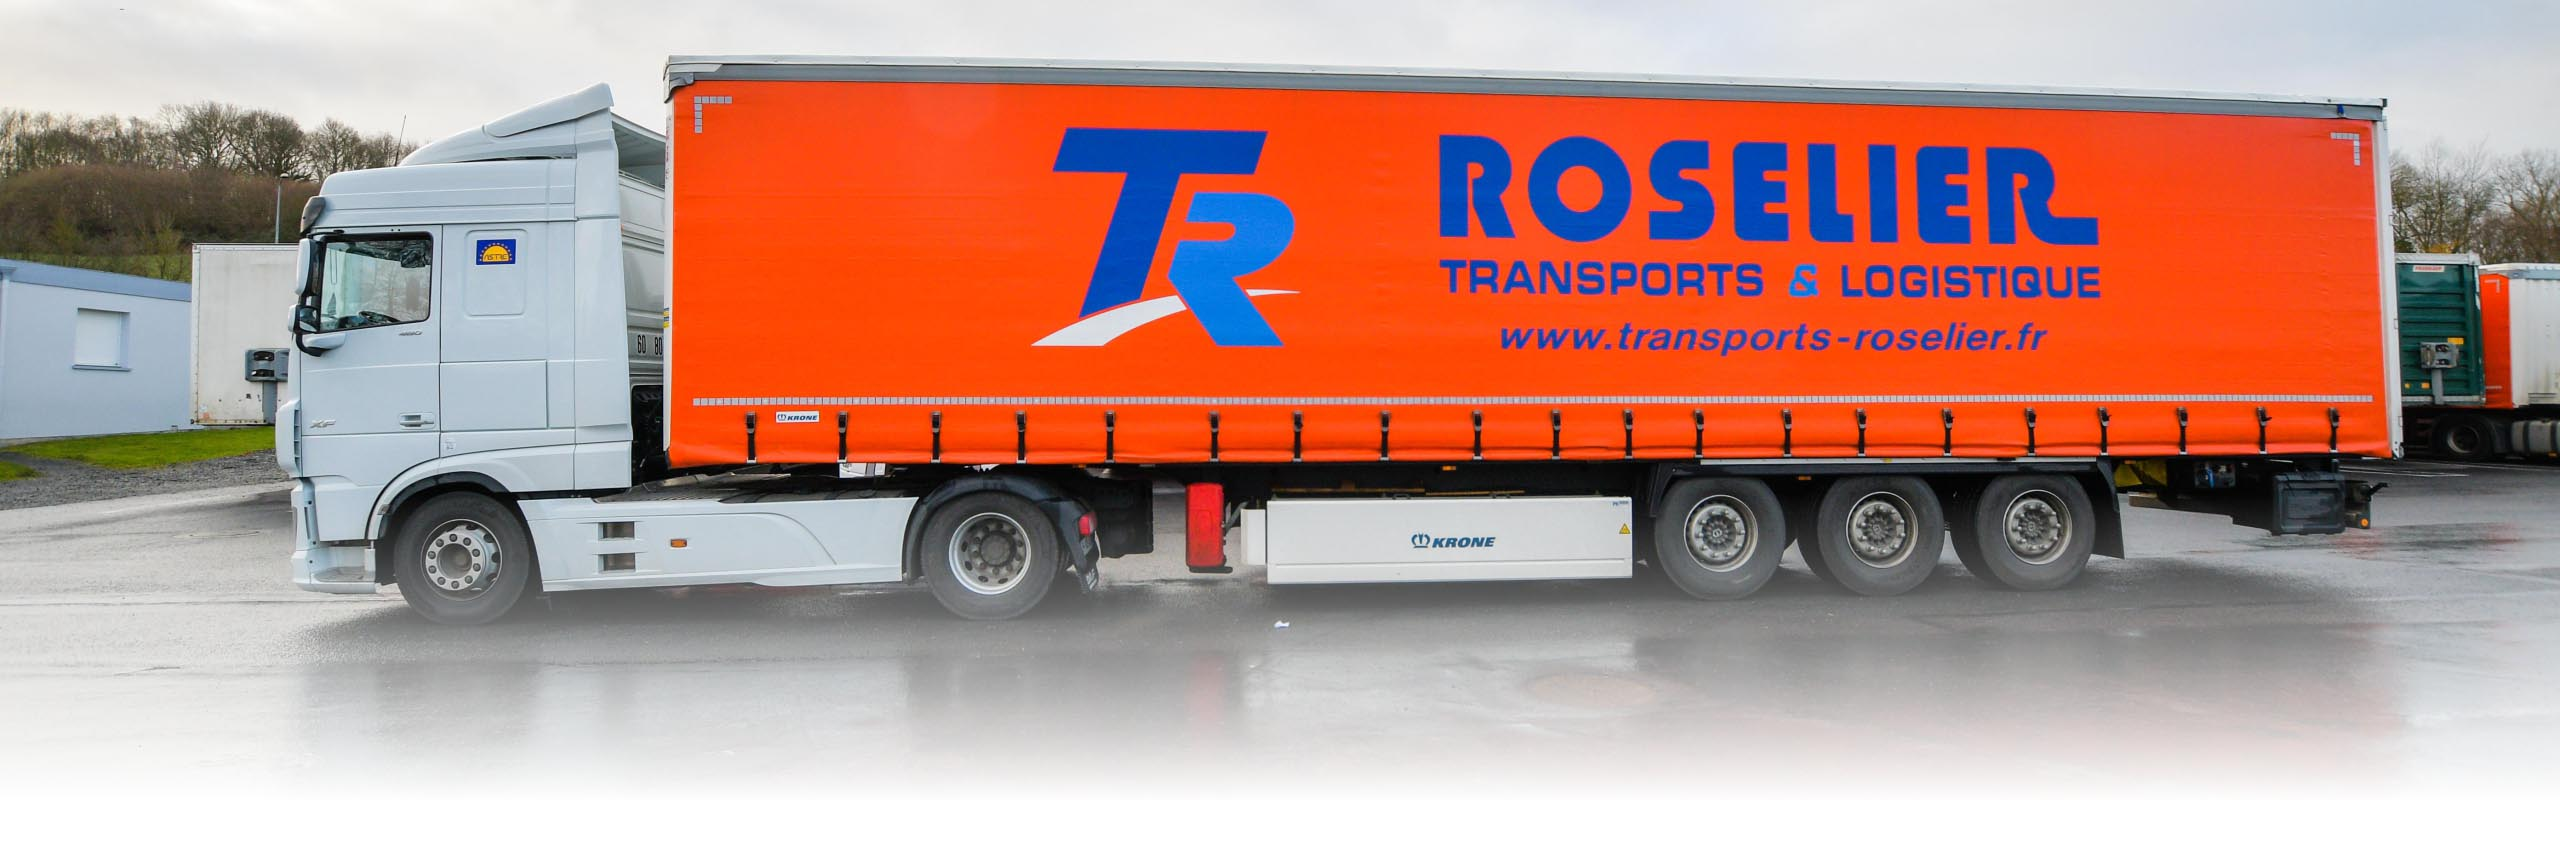 contact Transports Roselier